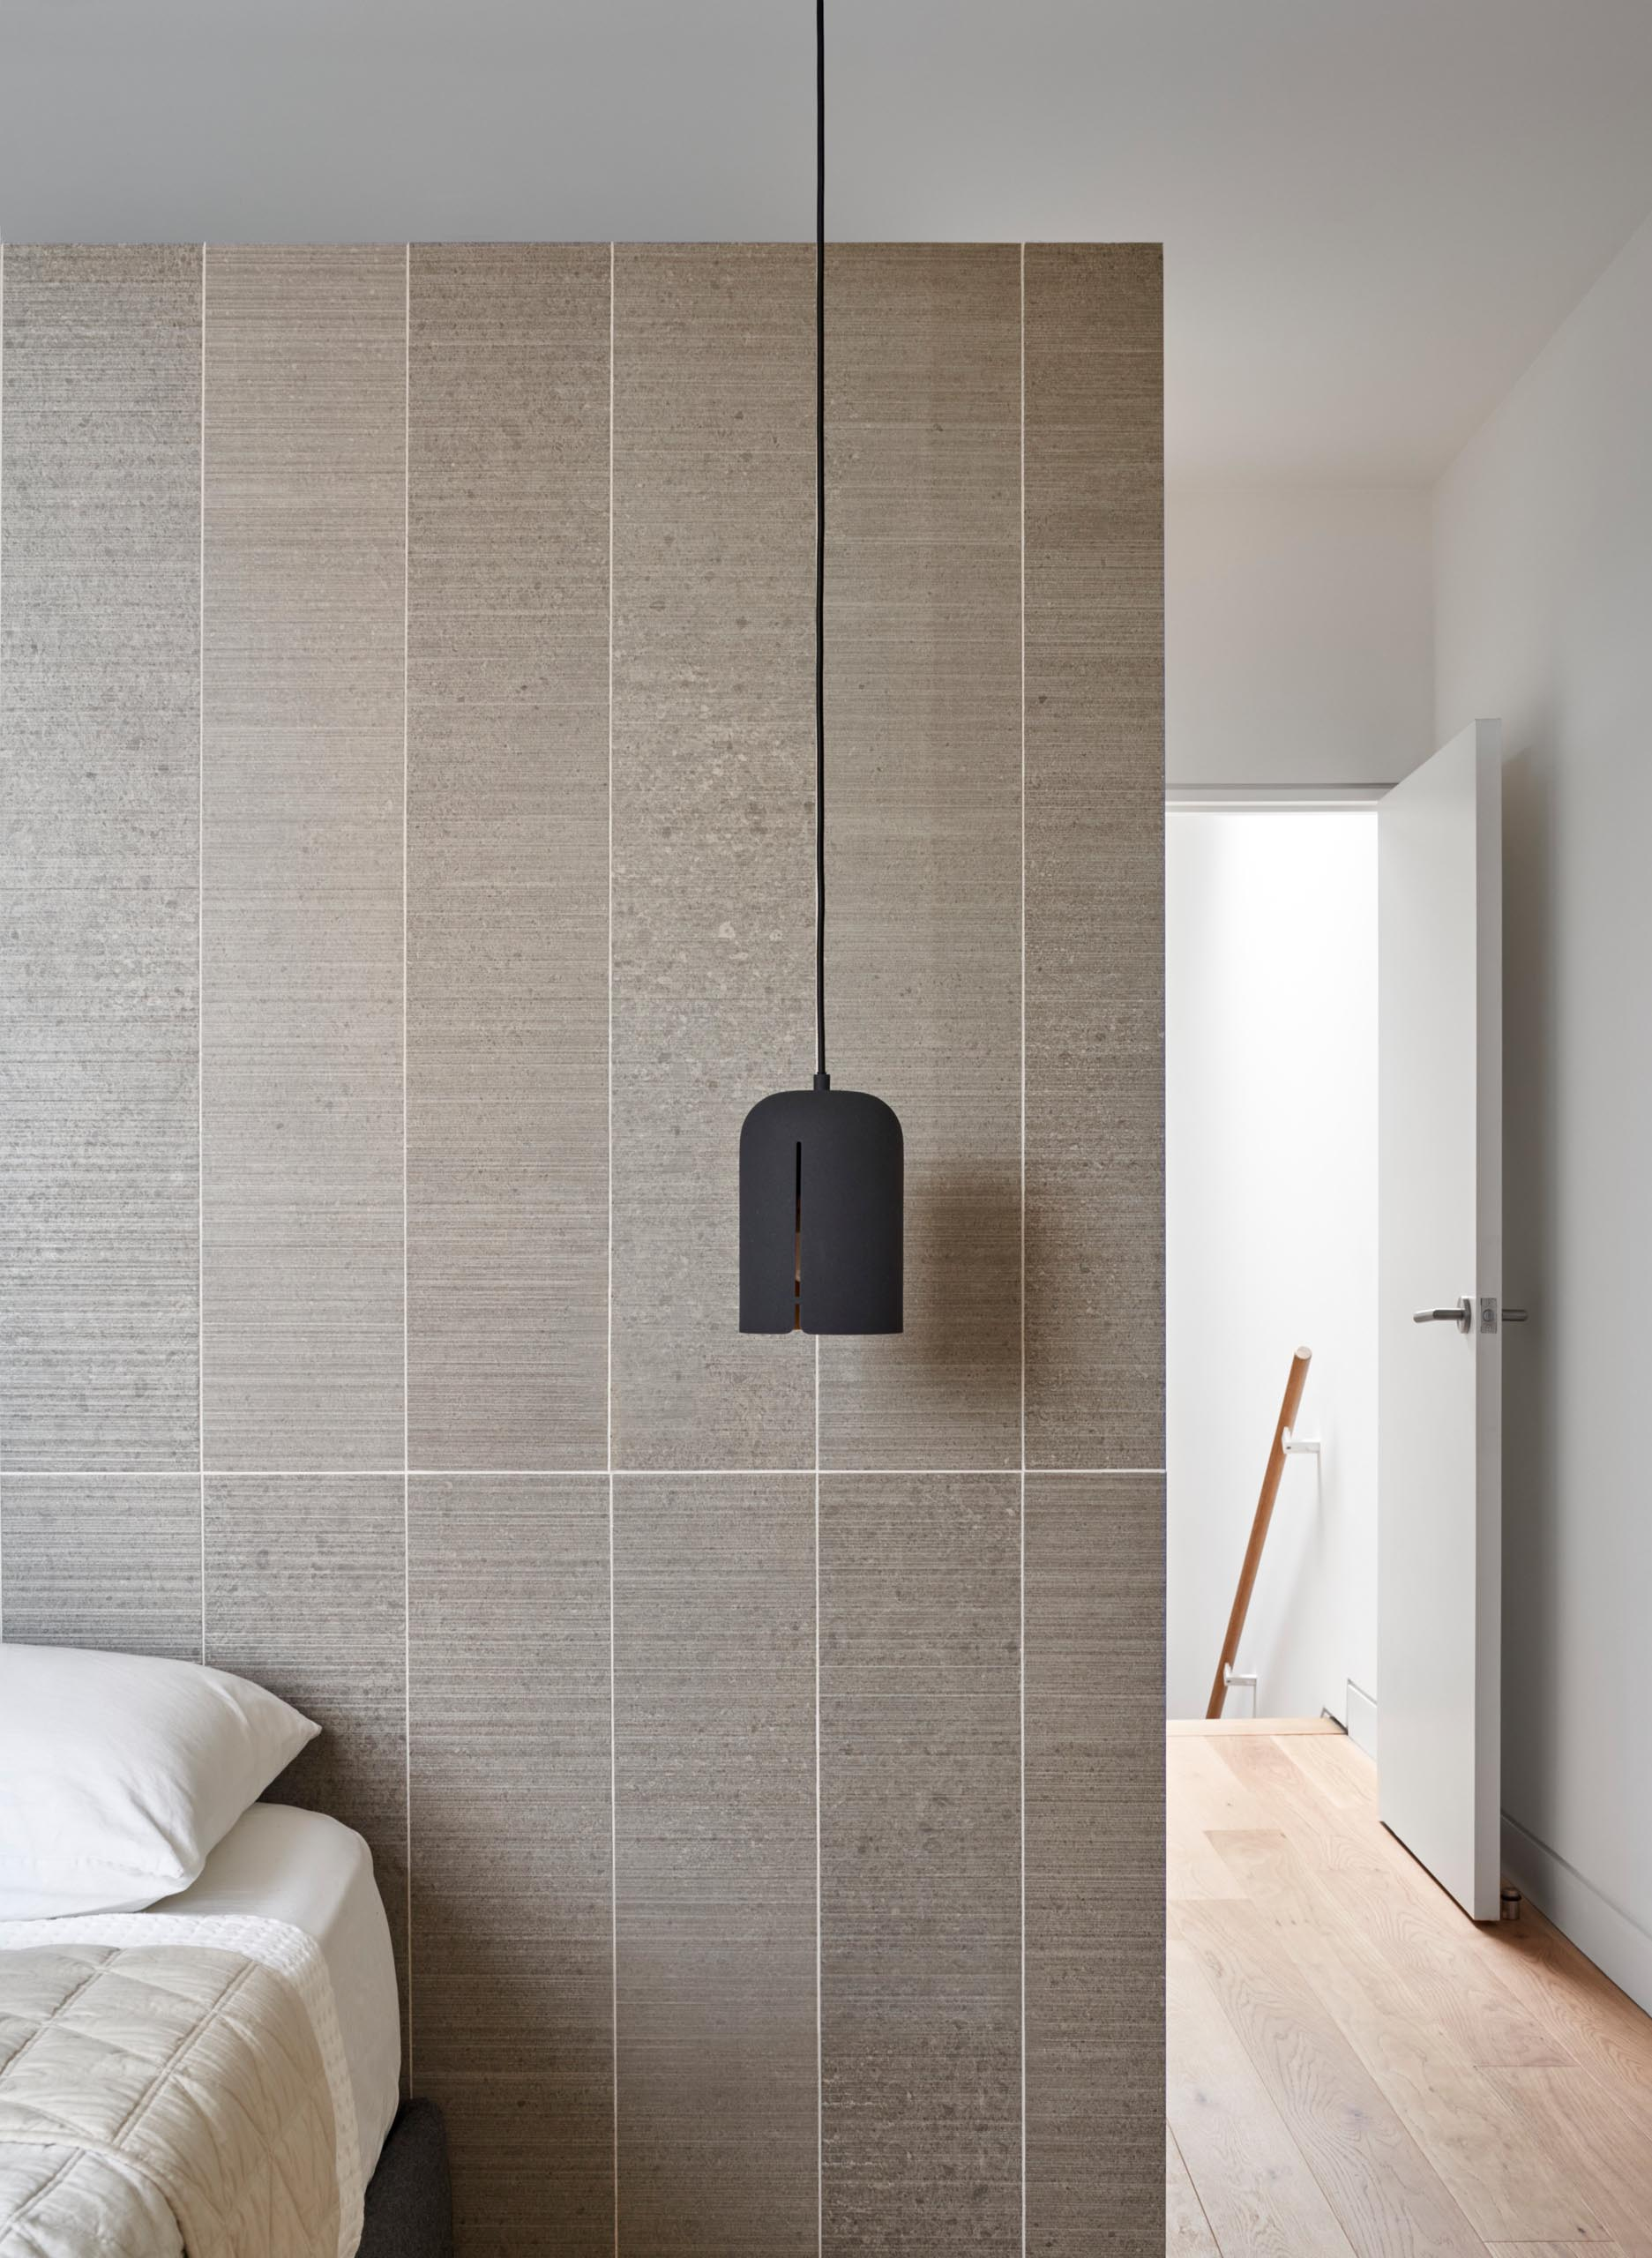 In this bedroom, a matte black pendant light contrasts the accent wall behind the bed and acts as a bedside lamp.